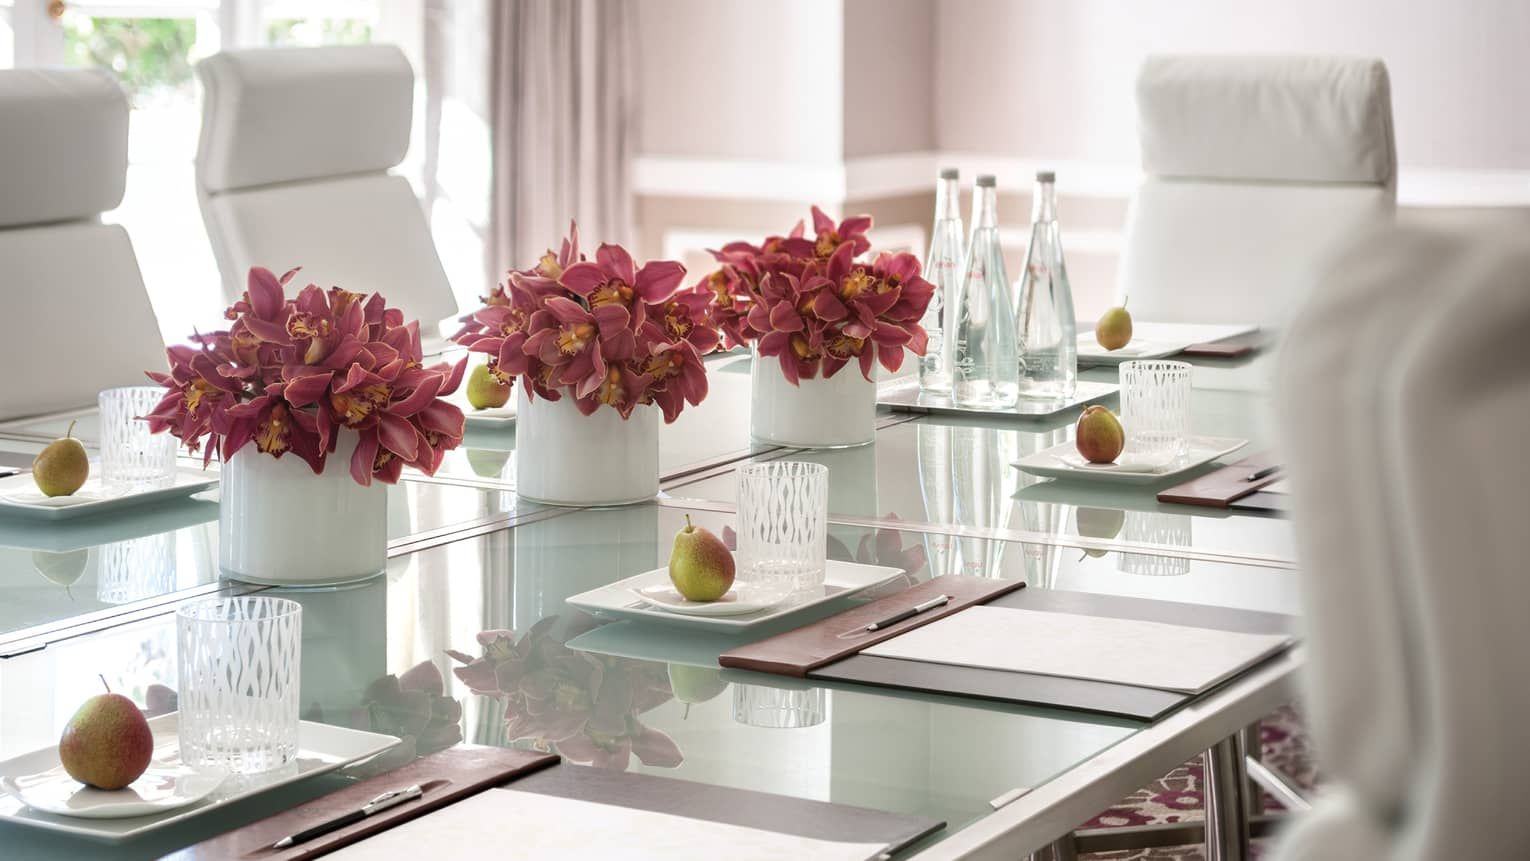 White chairs around frosted table with flowers, bottles of water, pears, glass and stationery